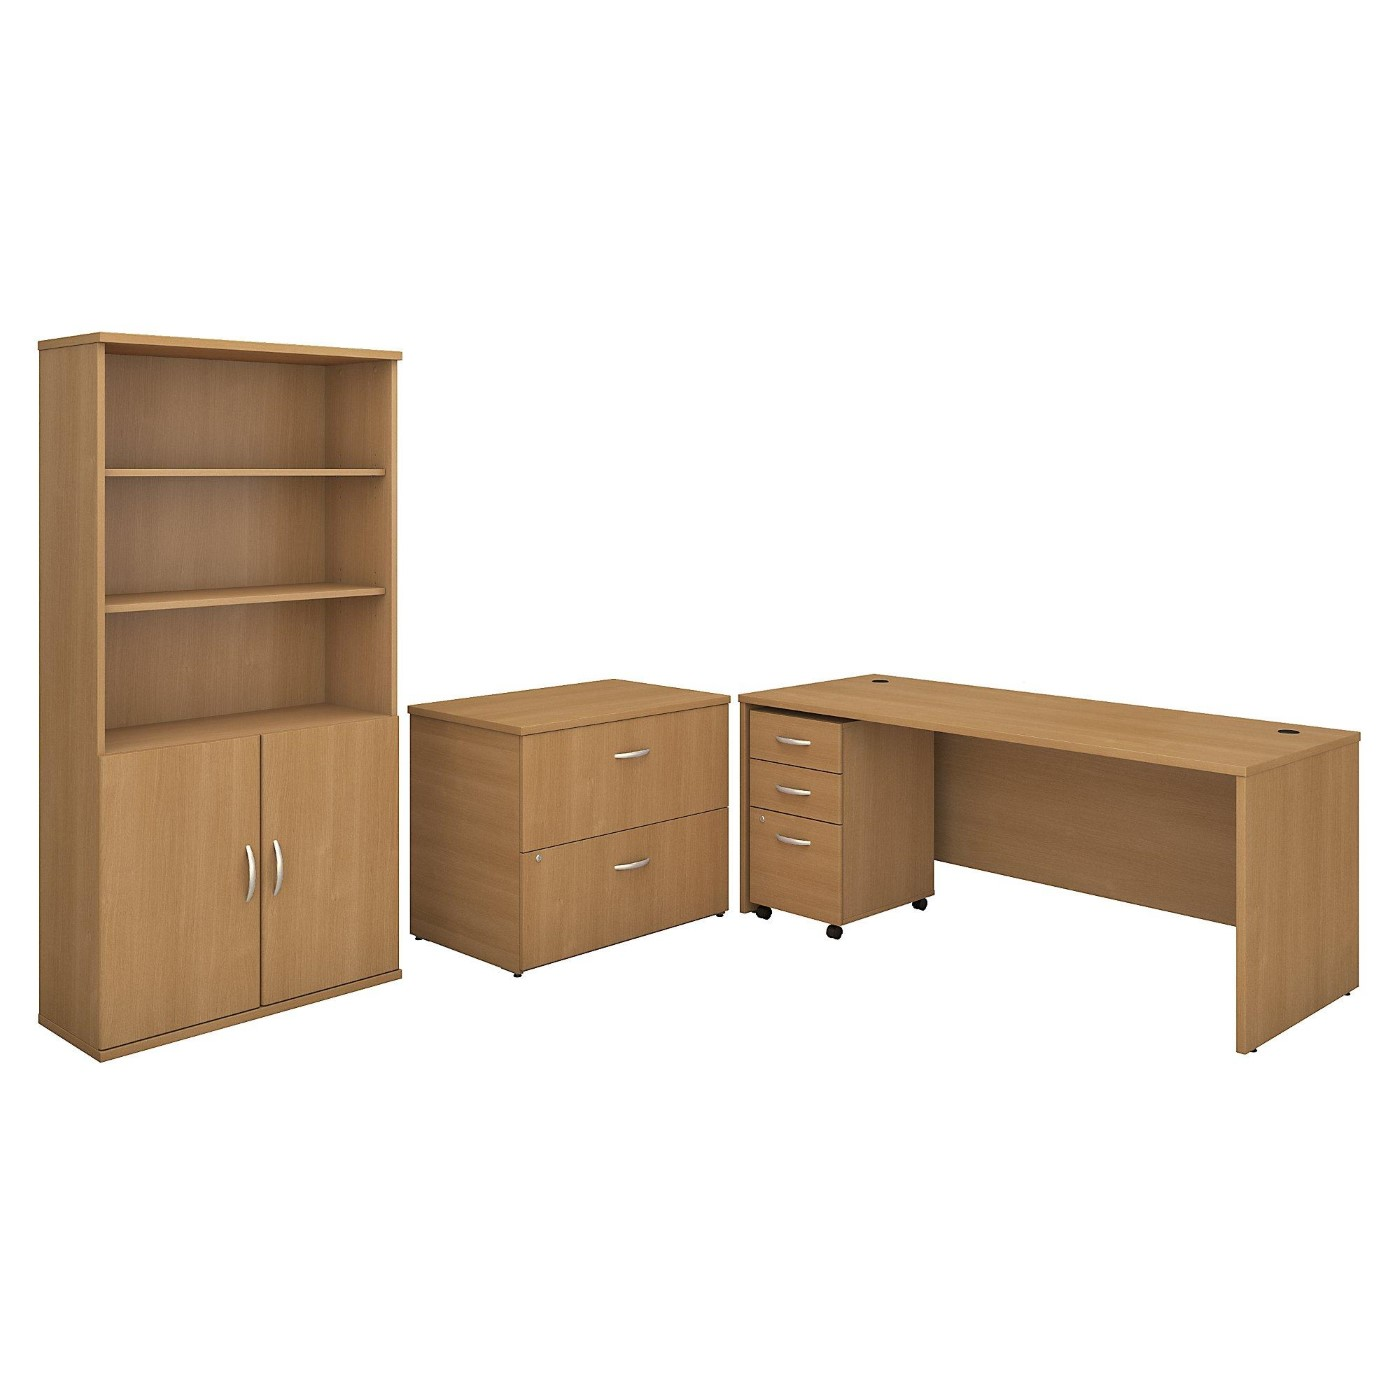 </b></font><b>BUSH BUSINESS FURNITURE SERIES C 72W OFFICE DESK WITH BOOKCASE AND FILE CABINETS. FREE SHIPPING</font>. </b></font></b>